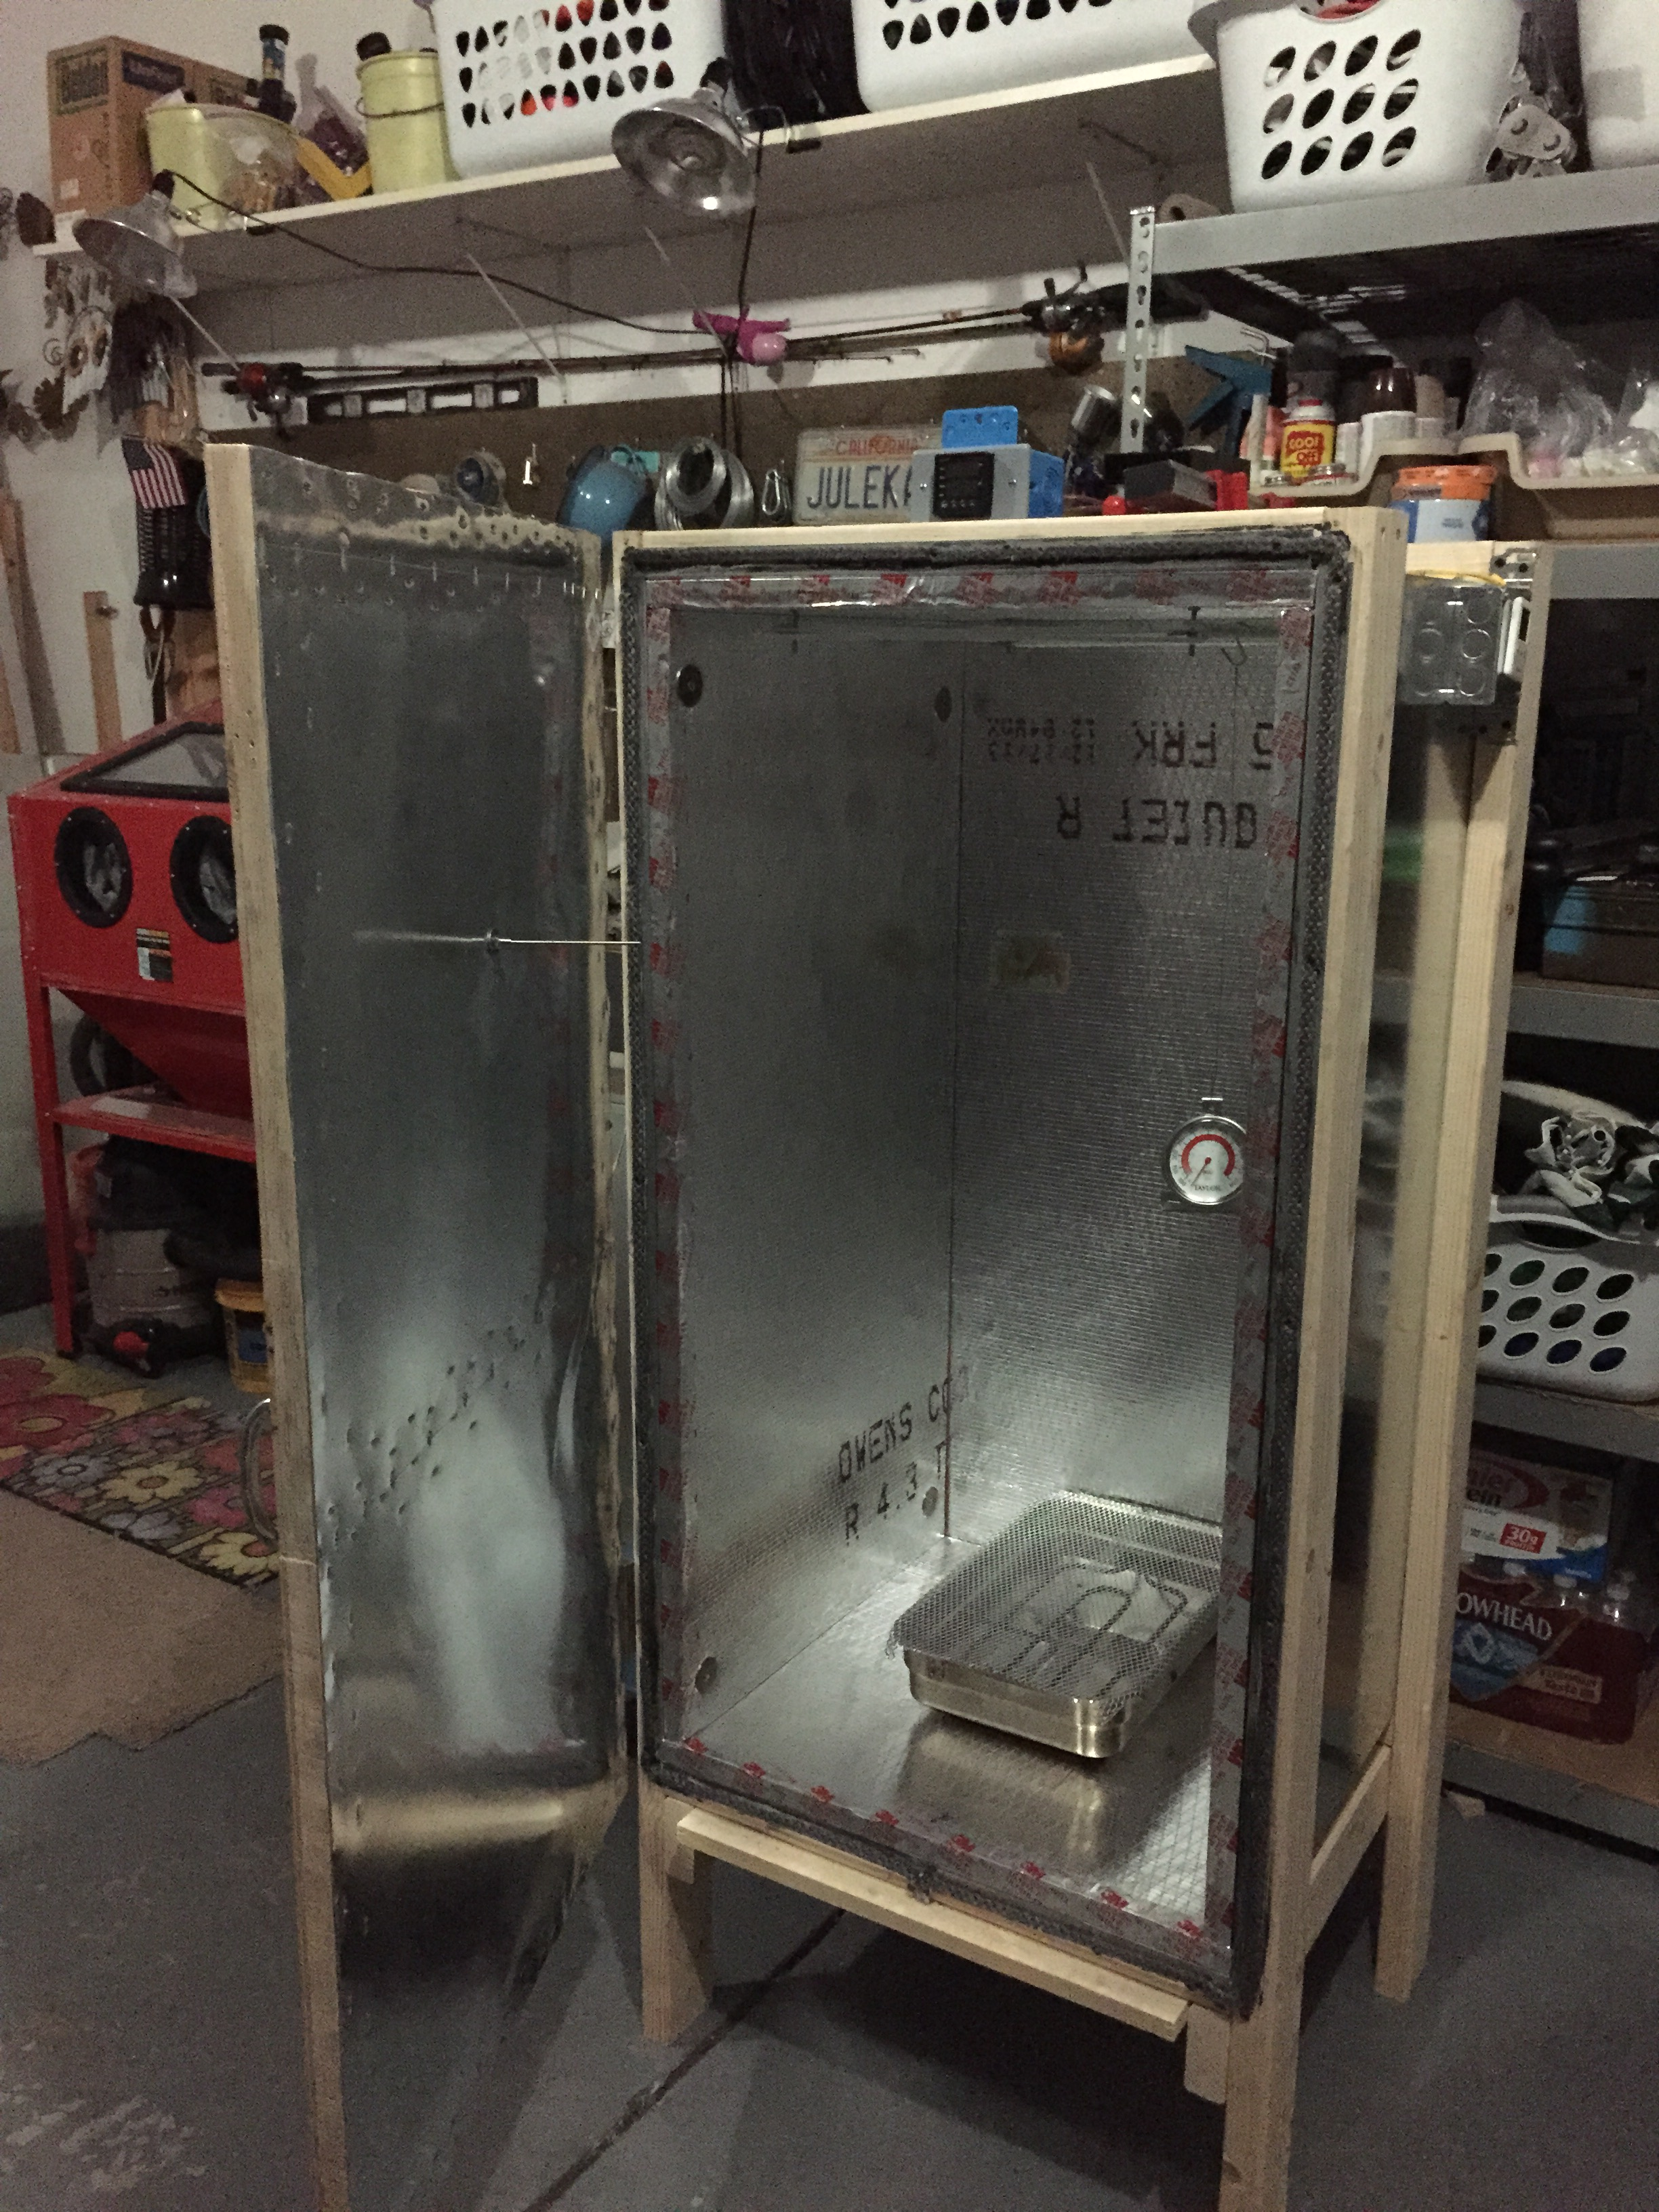 Diy curing oven diy do it your self for Paint curing oven